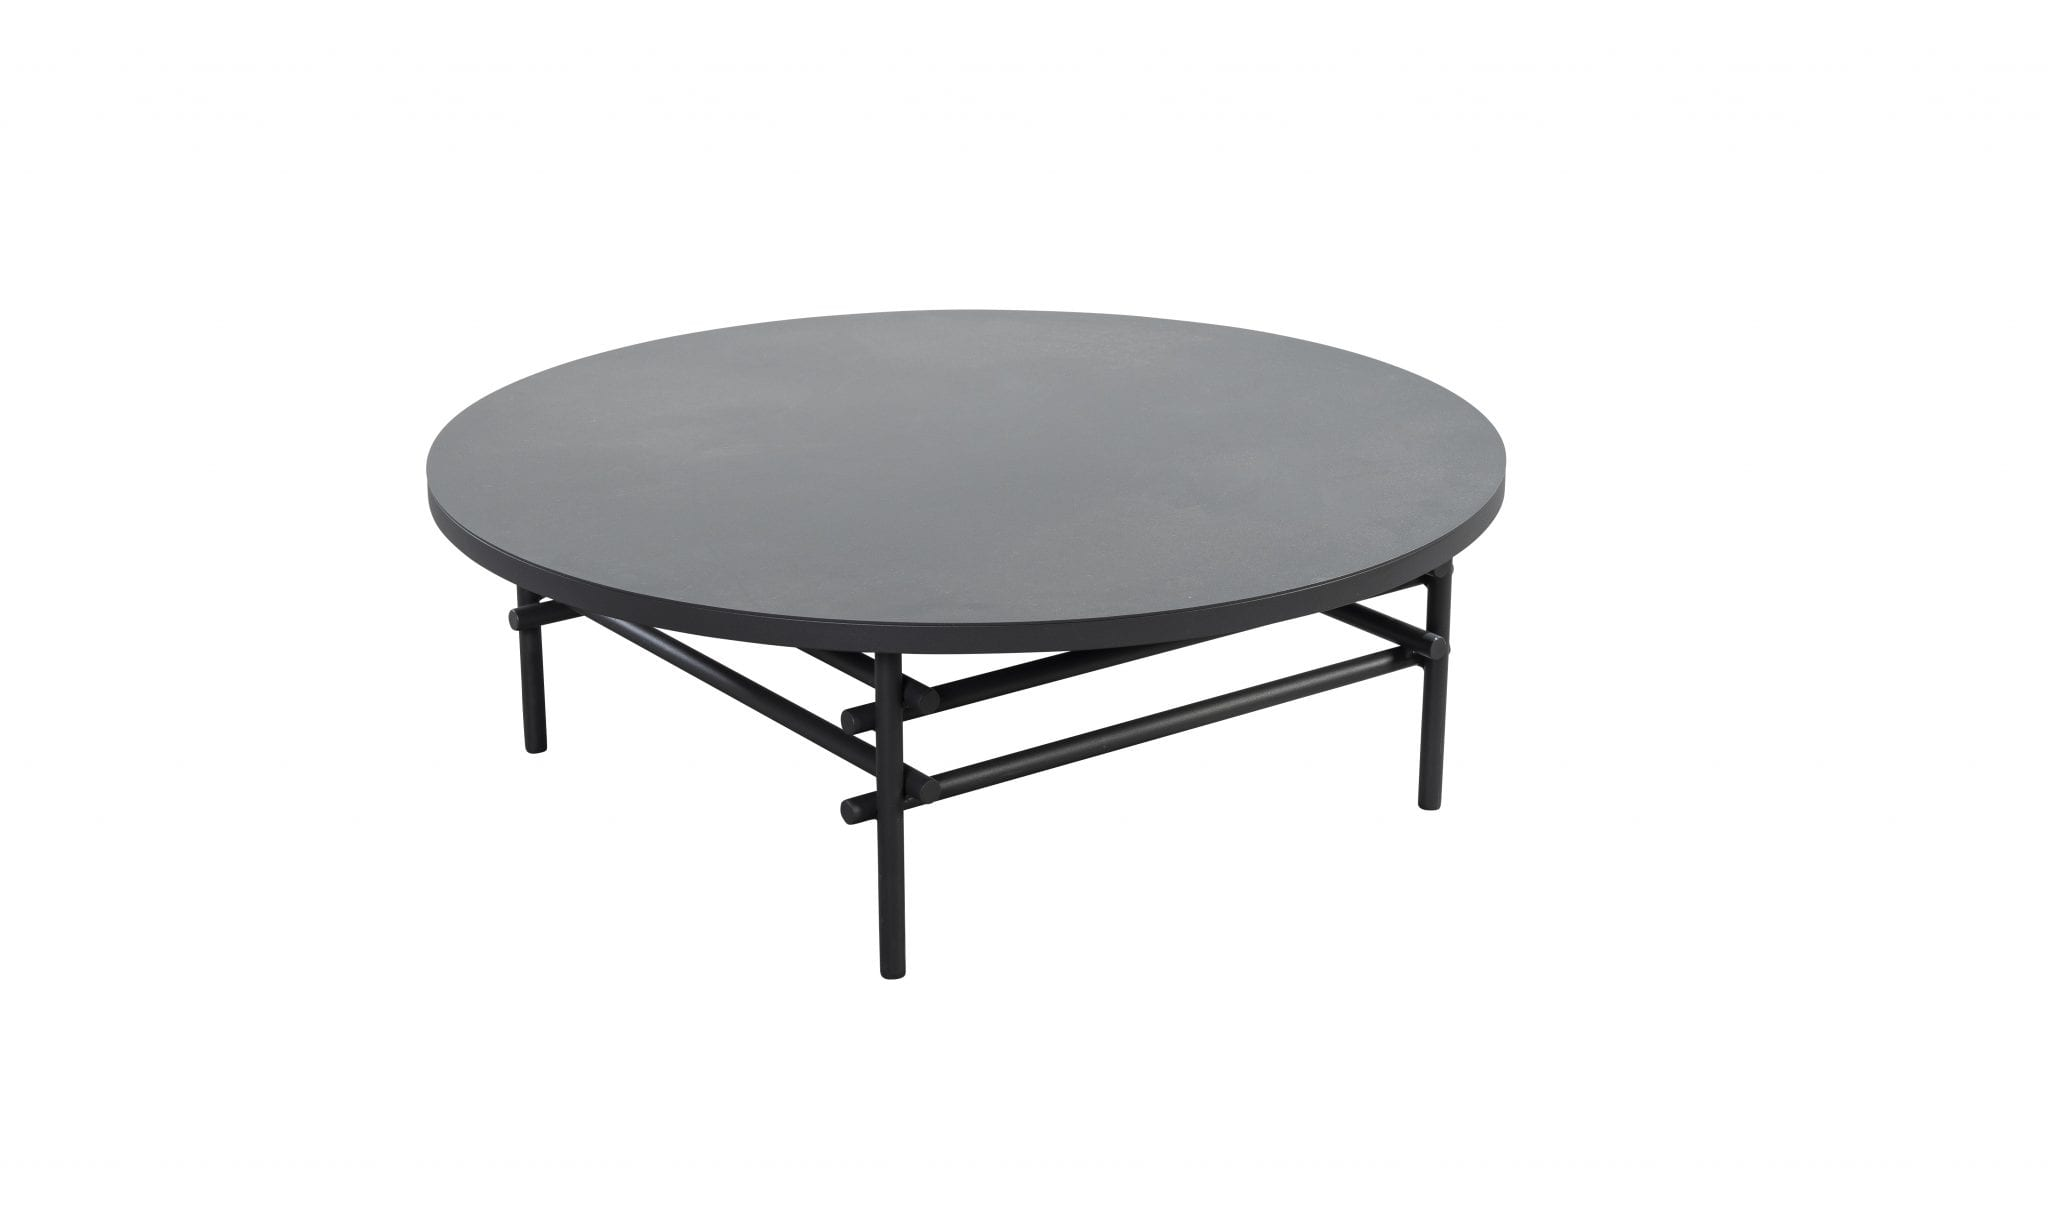 Ki 100 aluminium round coffee table - dark grey | Yoi Furniture